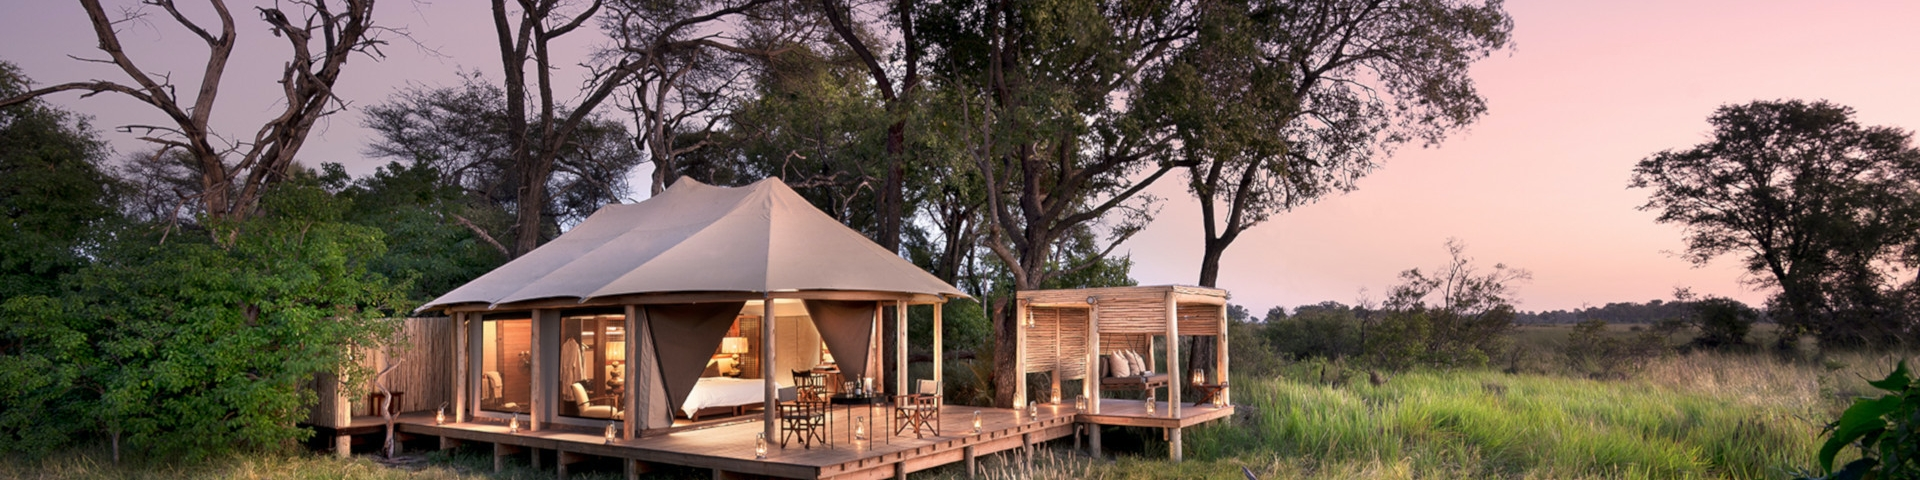 Accommodation - Nxabega Okavango Tented Camp Botswana